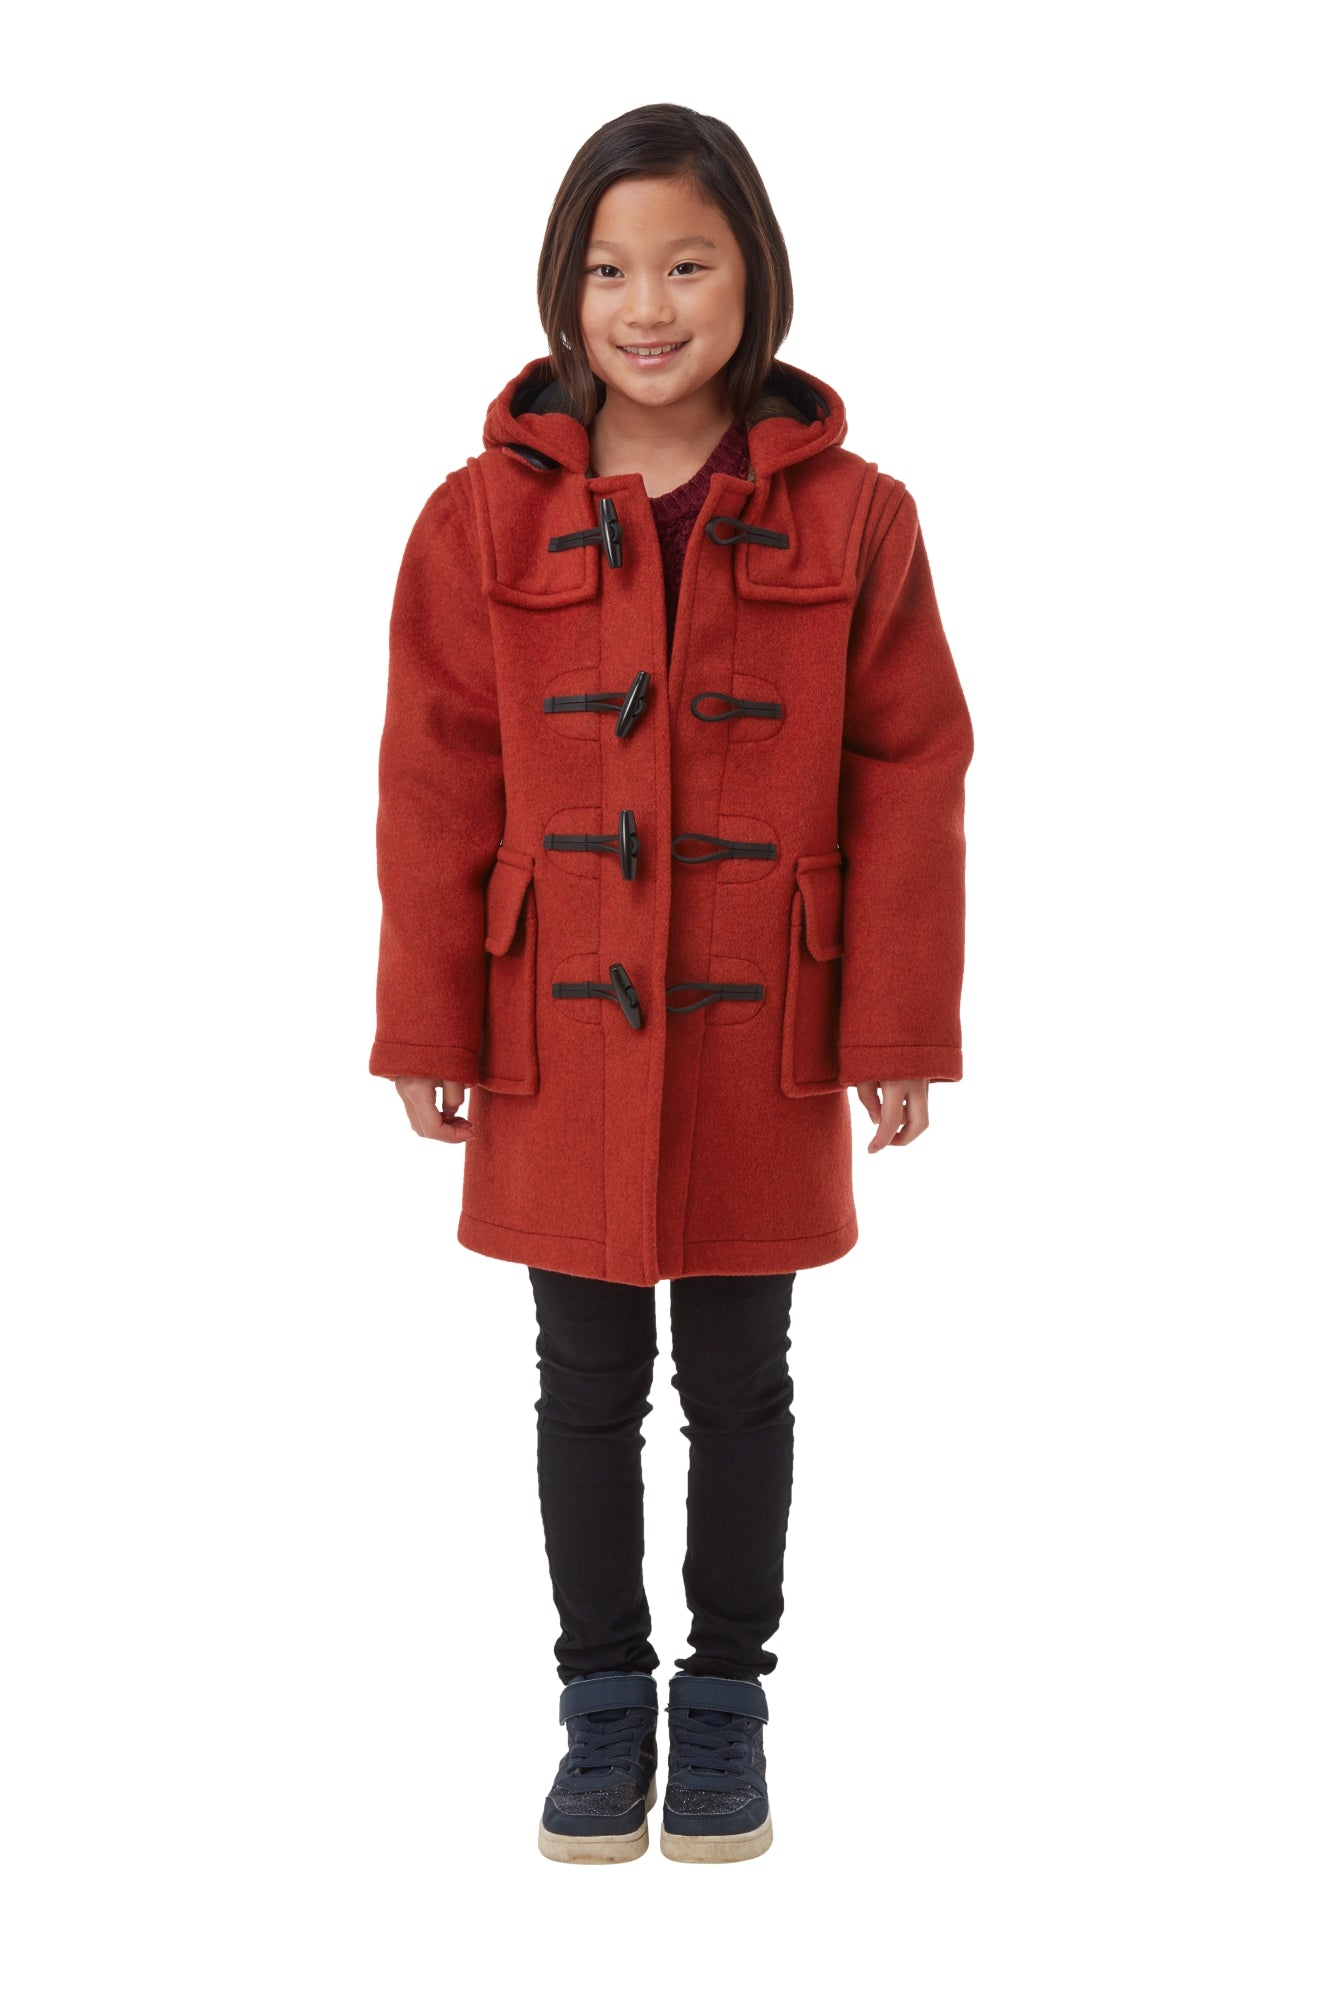 Children's Classic Duffle Coat - Burnt Orange